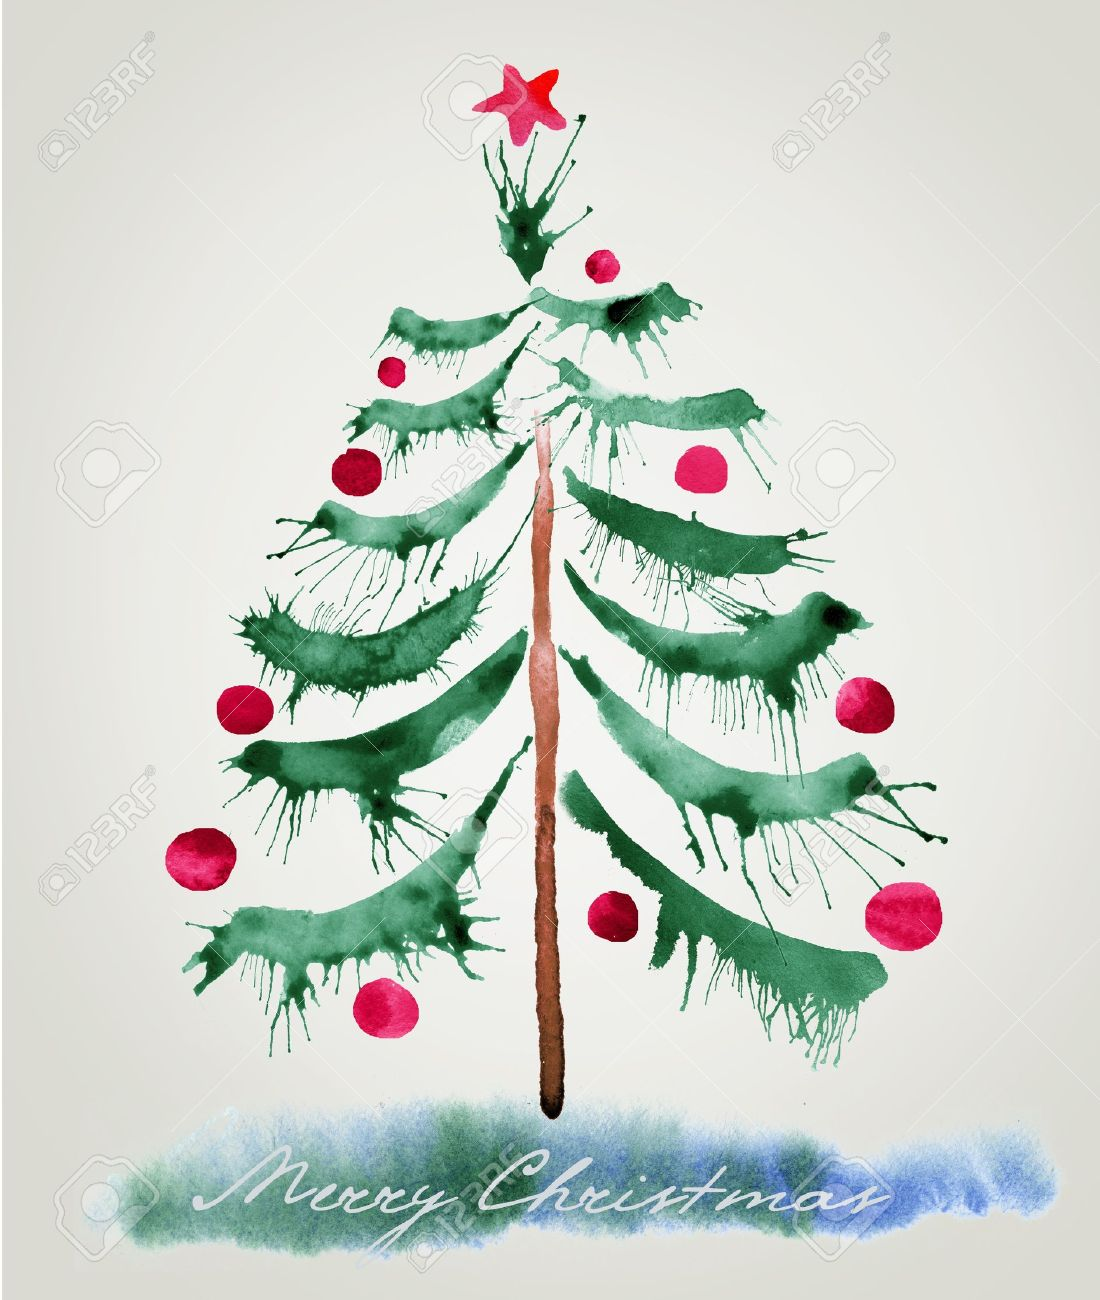 Christmas Tree Watercolor Painting Stock Photo Picture And Royalty